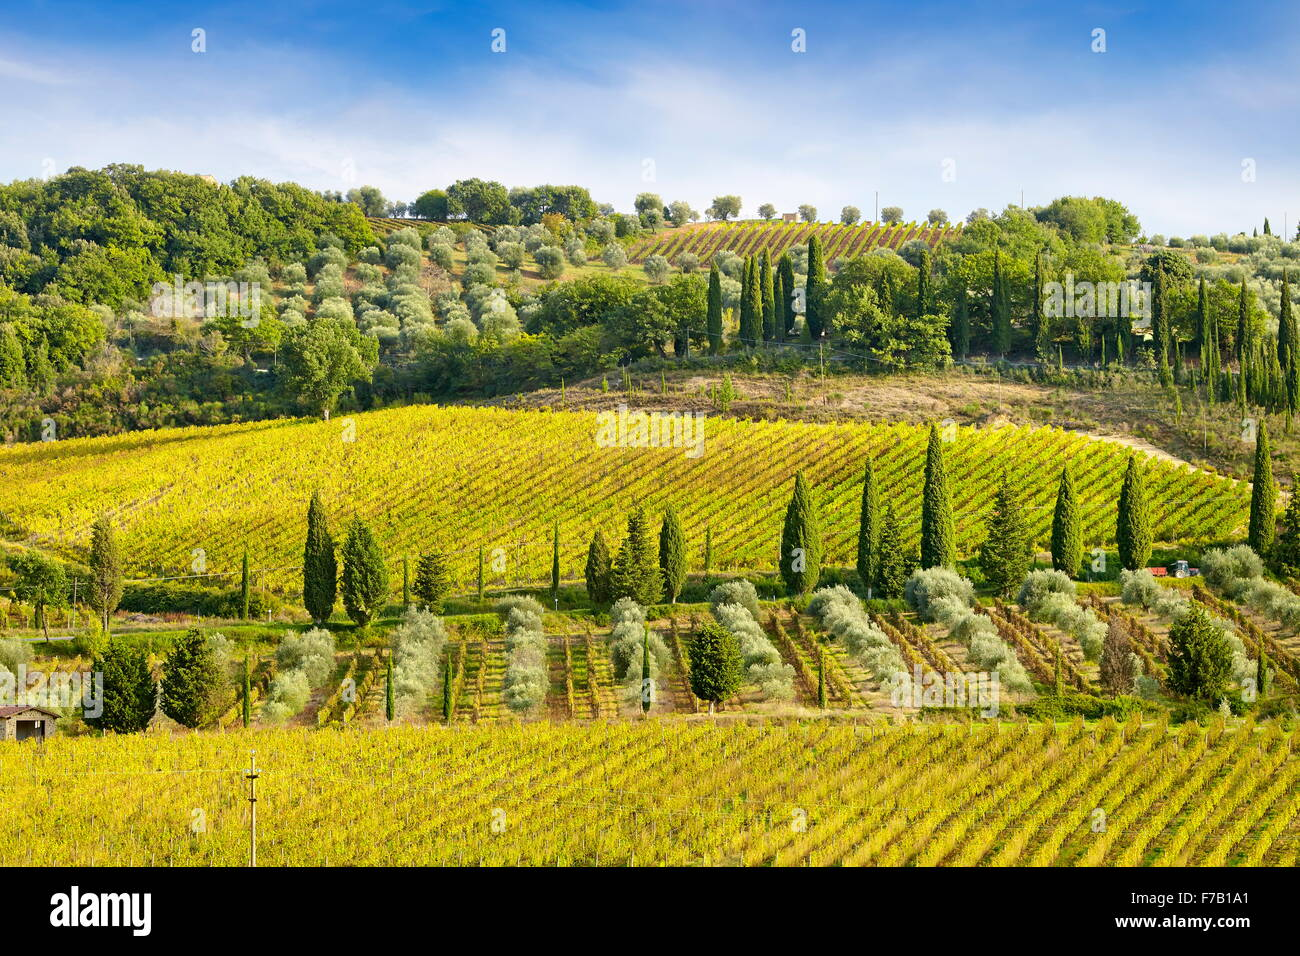 Vigne, Toscane Italie Photo Stock